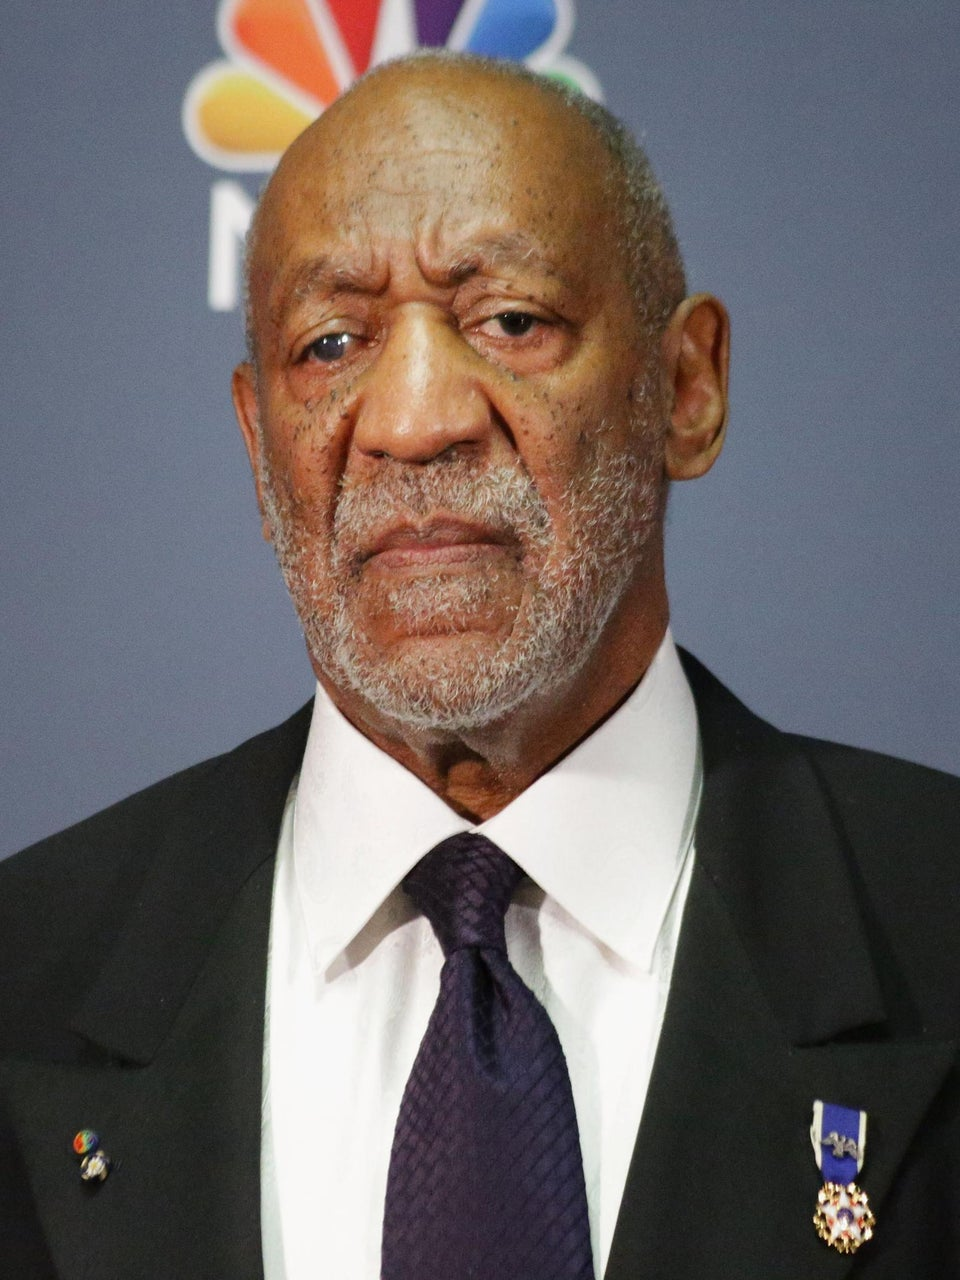 Bill Cosby's Lawyers Claim He's Legally Blind And Can't Identify His Sexual Assault Accusers